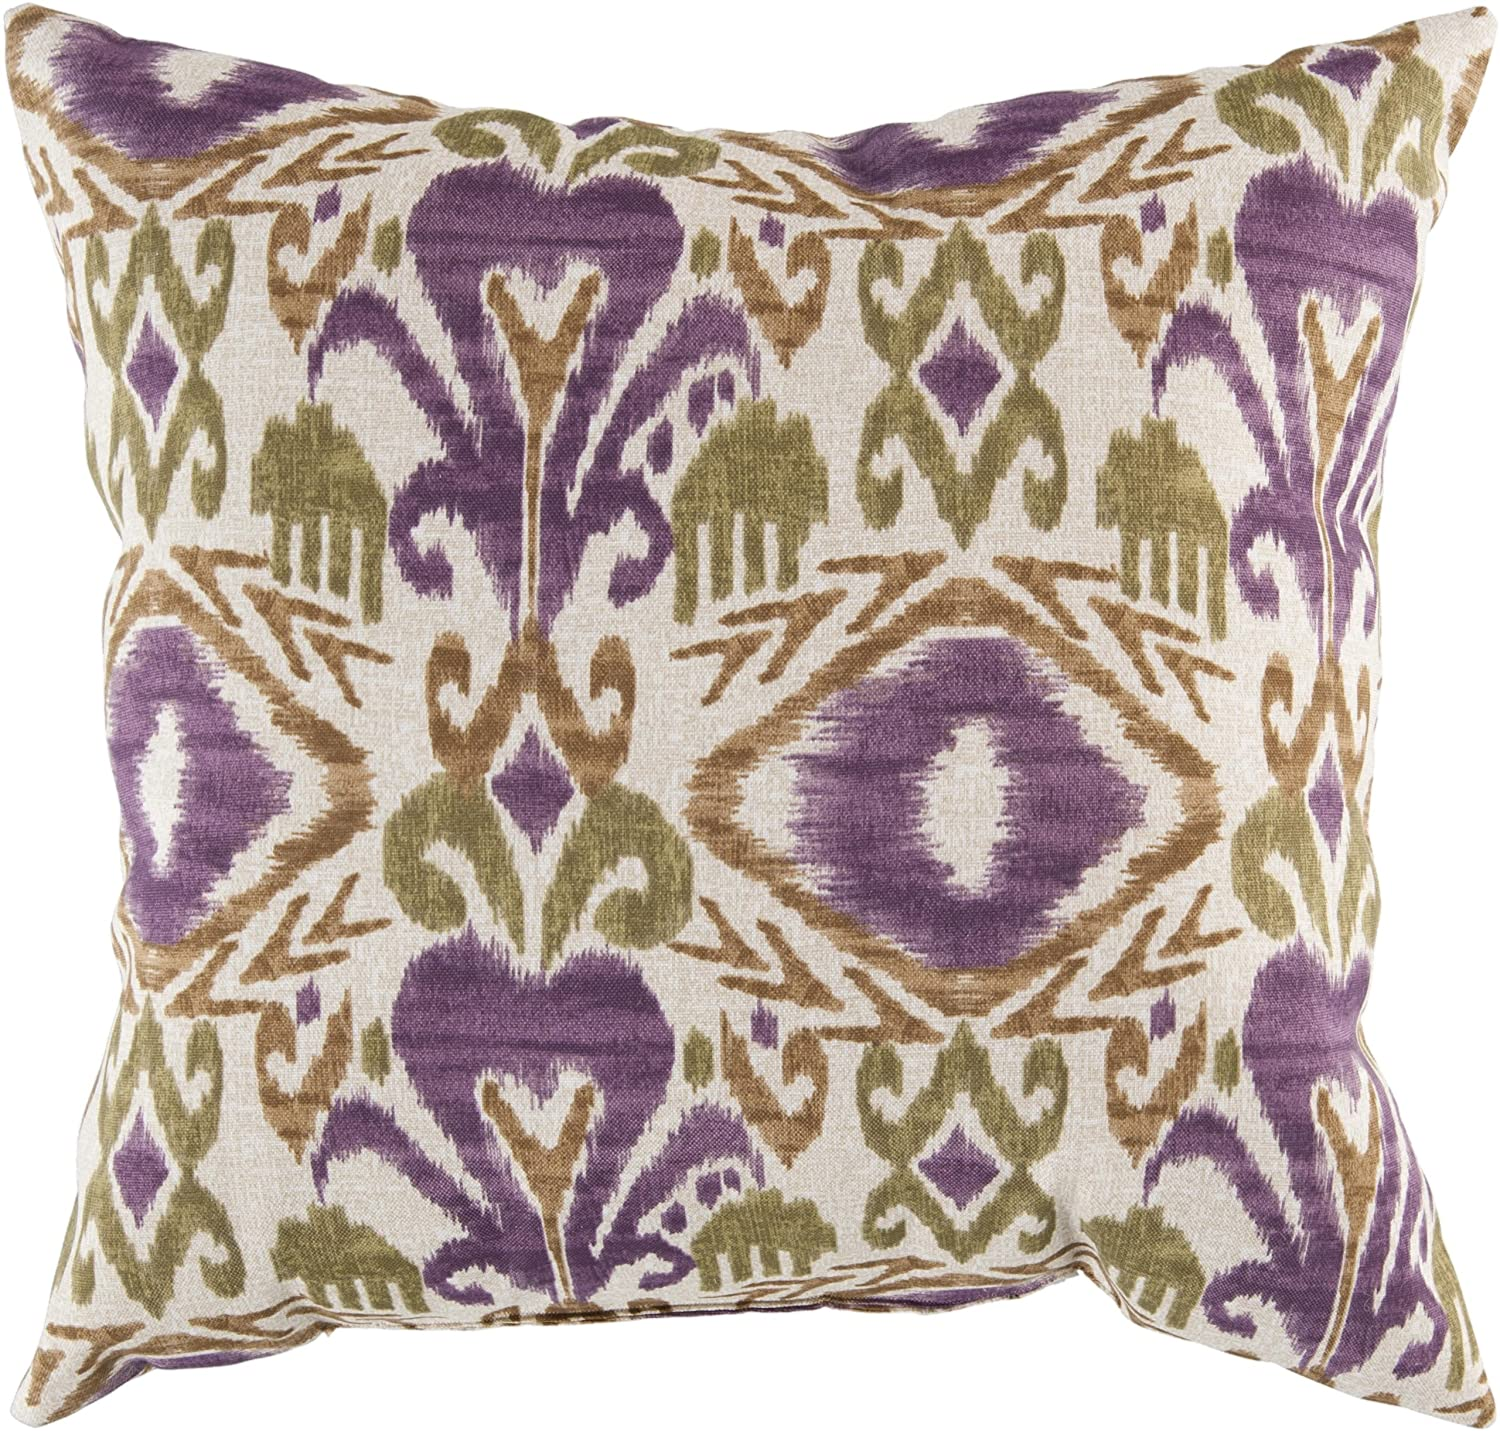 Surya ZZ421-1818 Indoor/Outdoor Pillow, 18-Inch by 18-Inch, Olive/Eggplant/Beige/Ivory